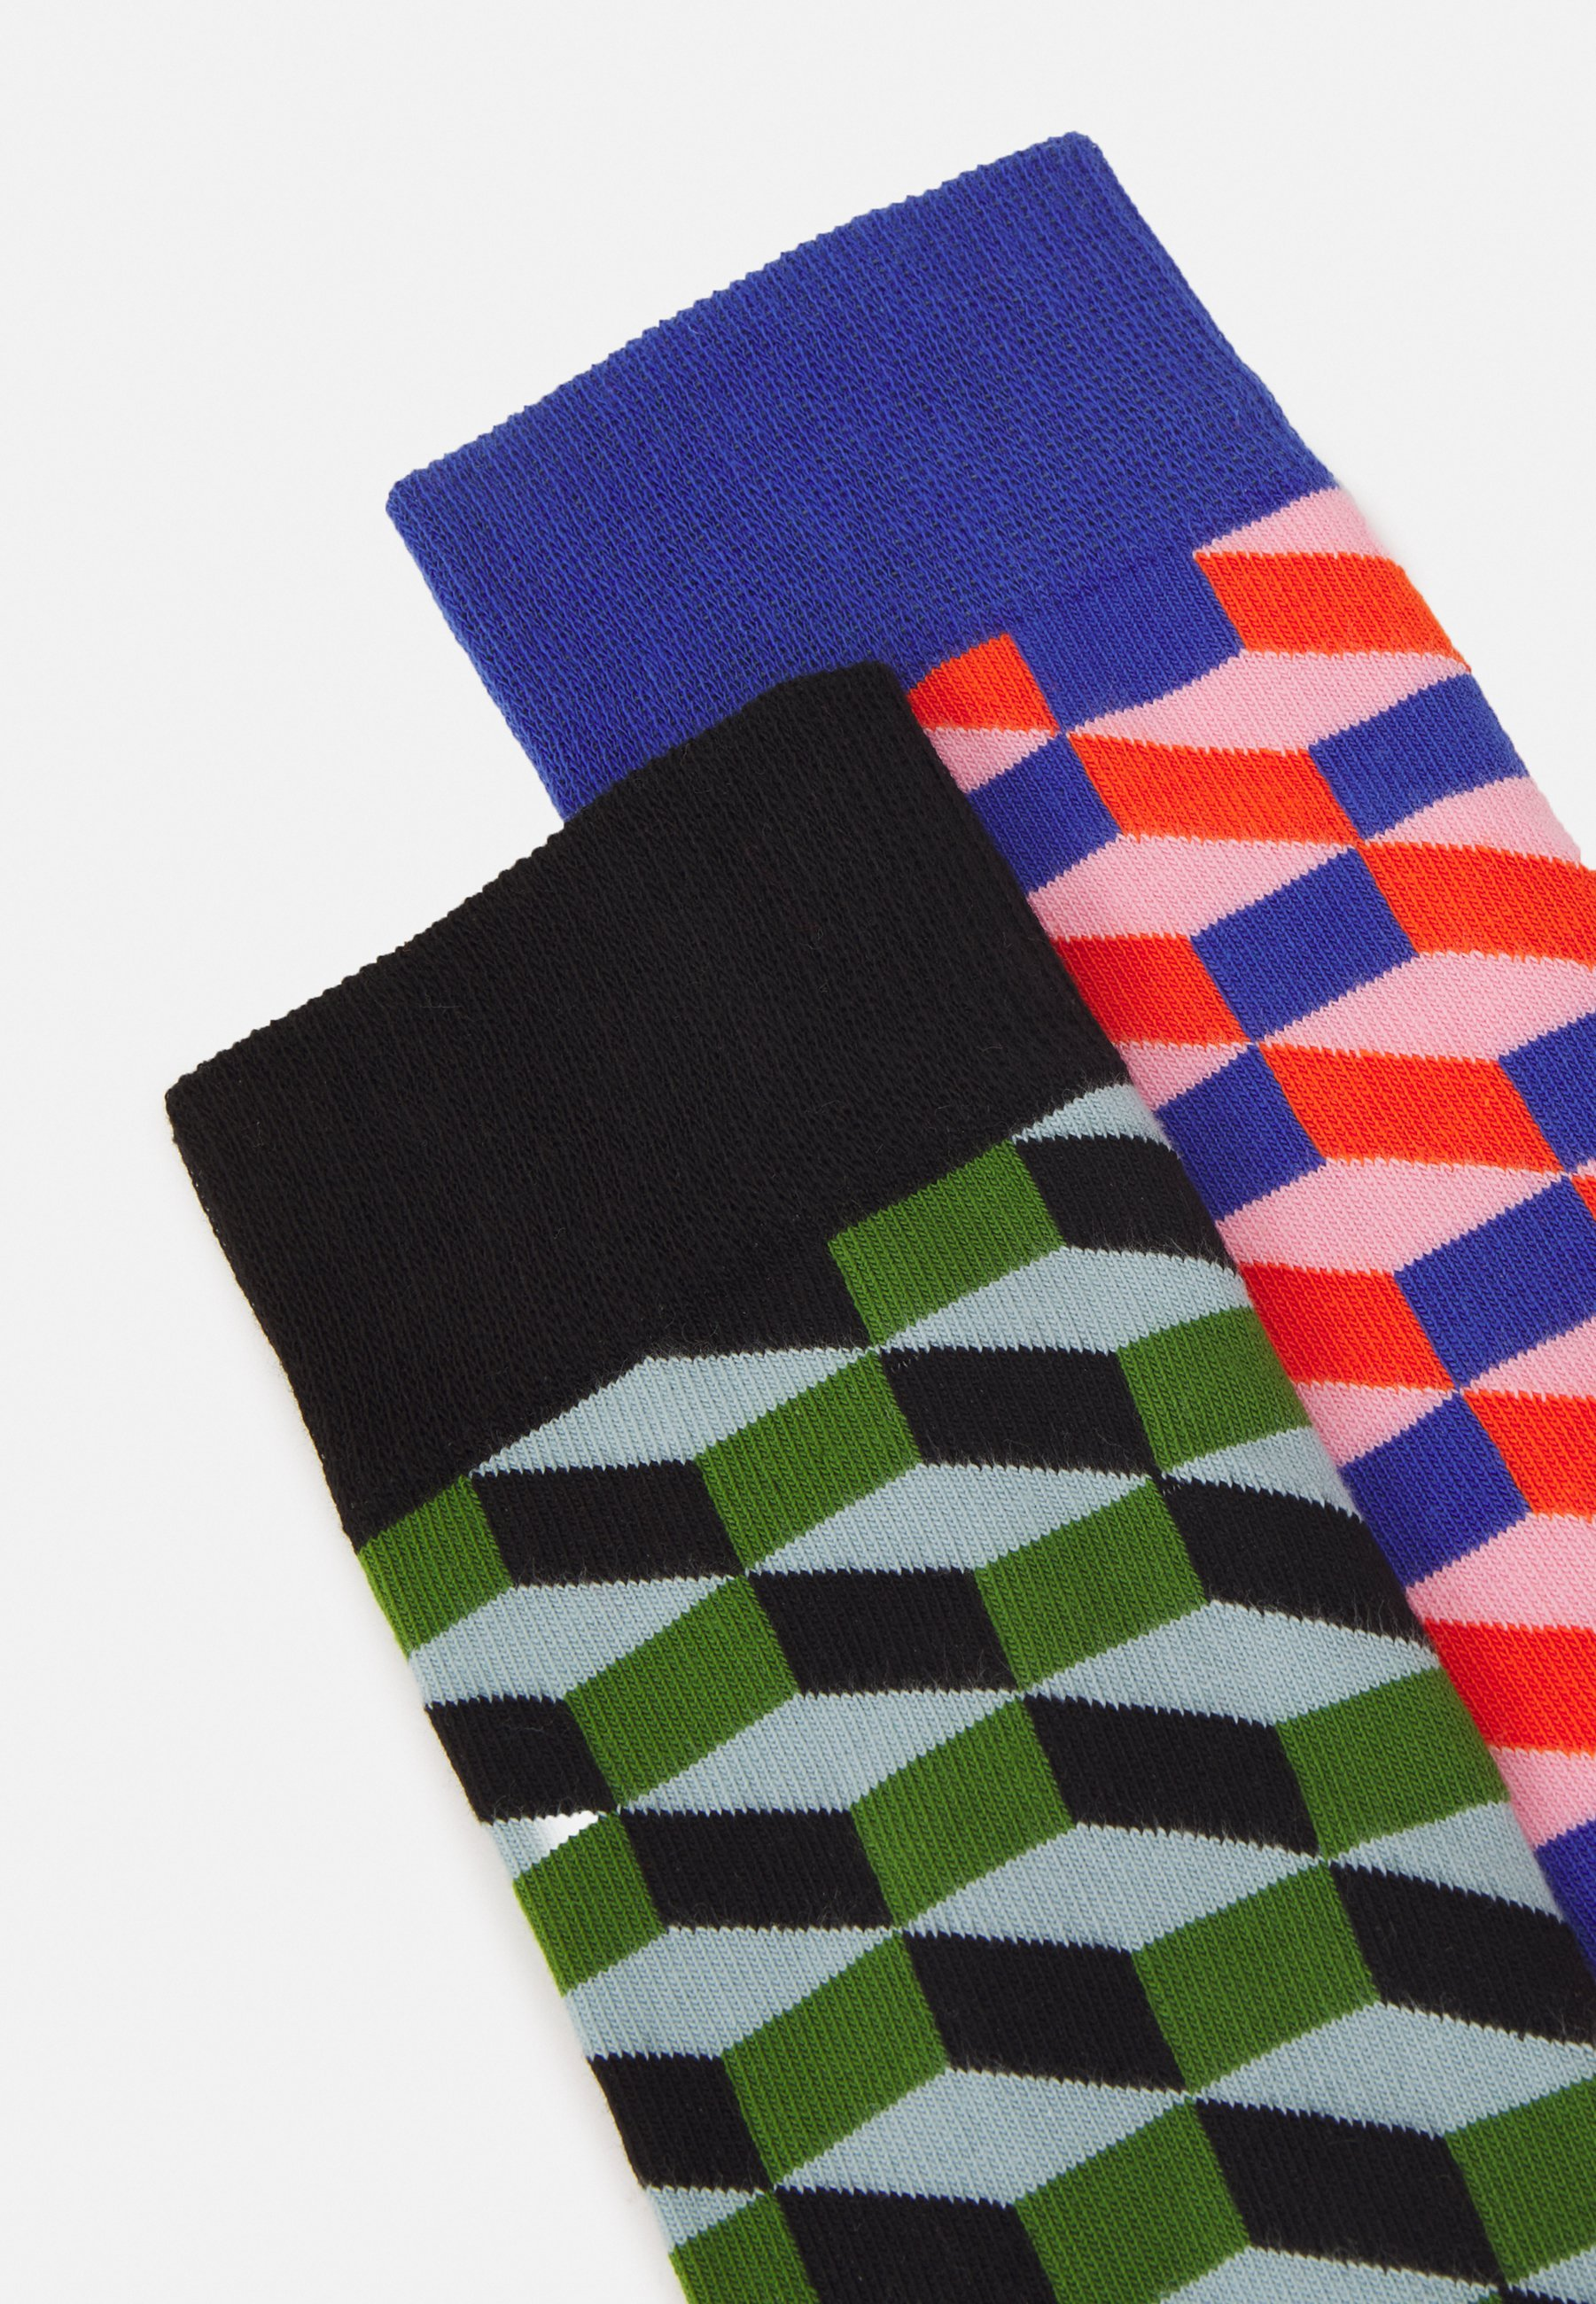 Femme FILLED OPTIC 2 PACK UNISEX - Chaussettes